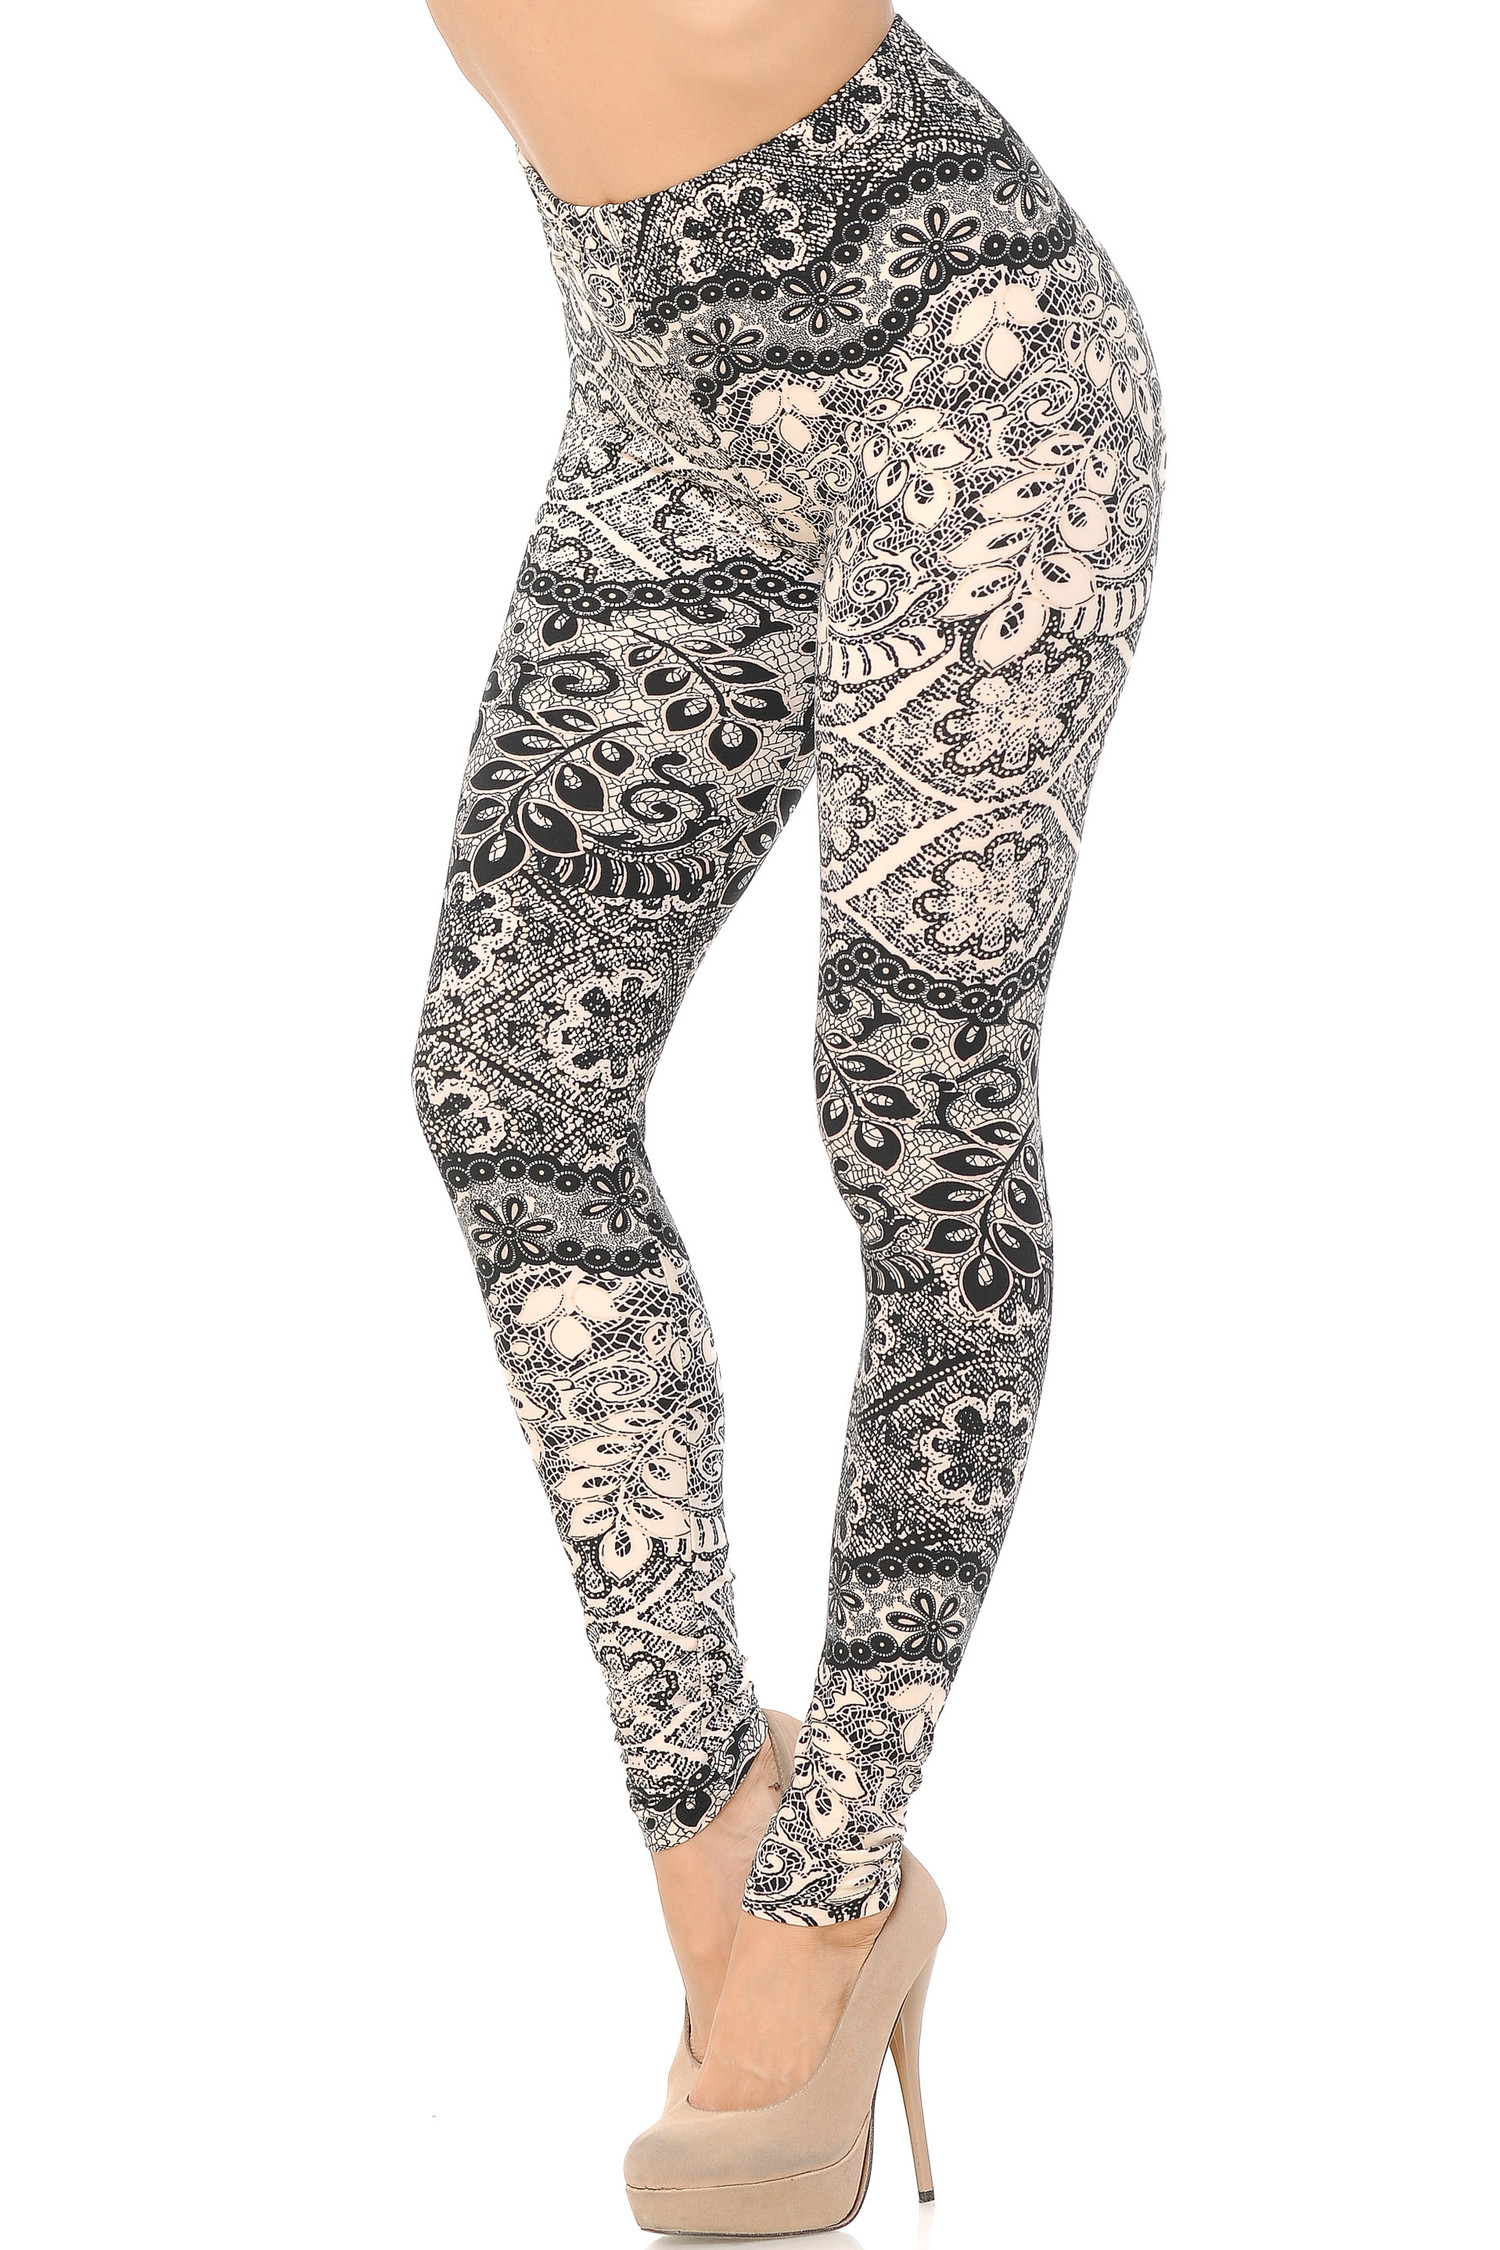 Brushed Cream Holiday Leaf Extra Plus Size Leggings - 3X-5X